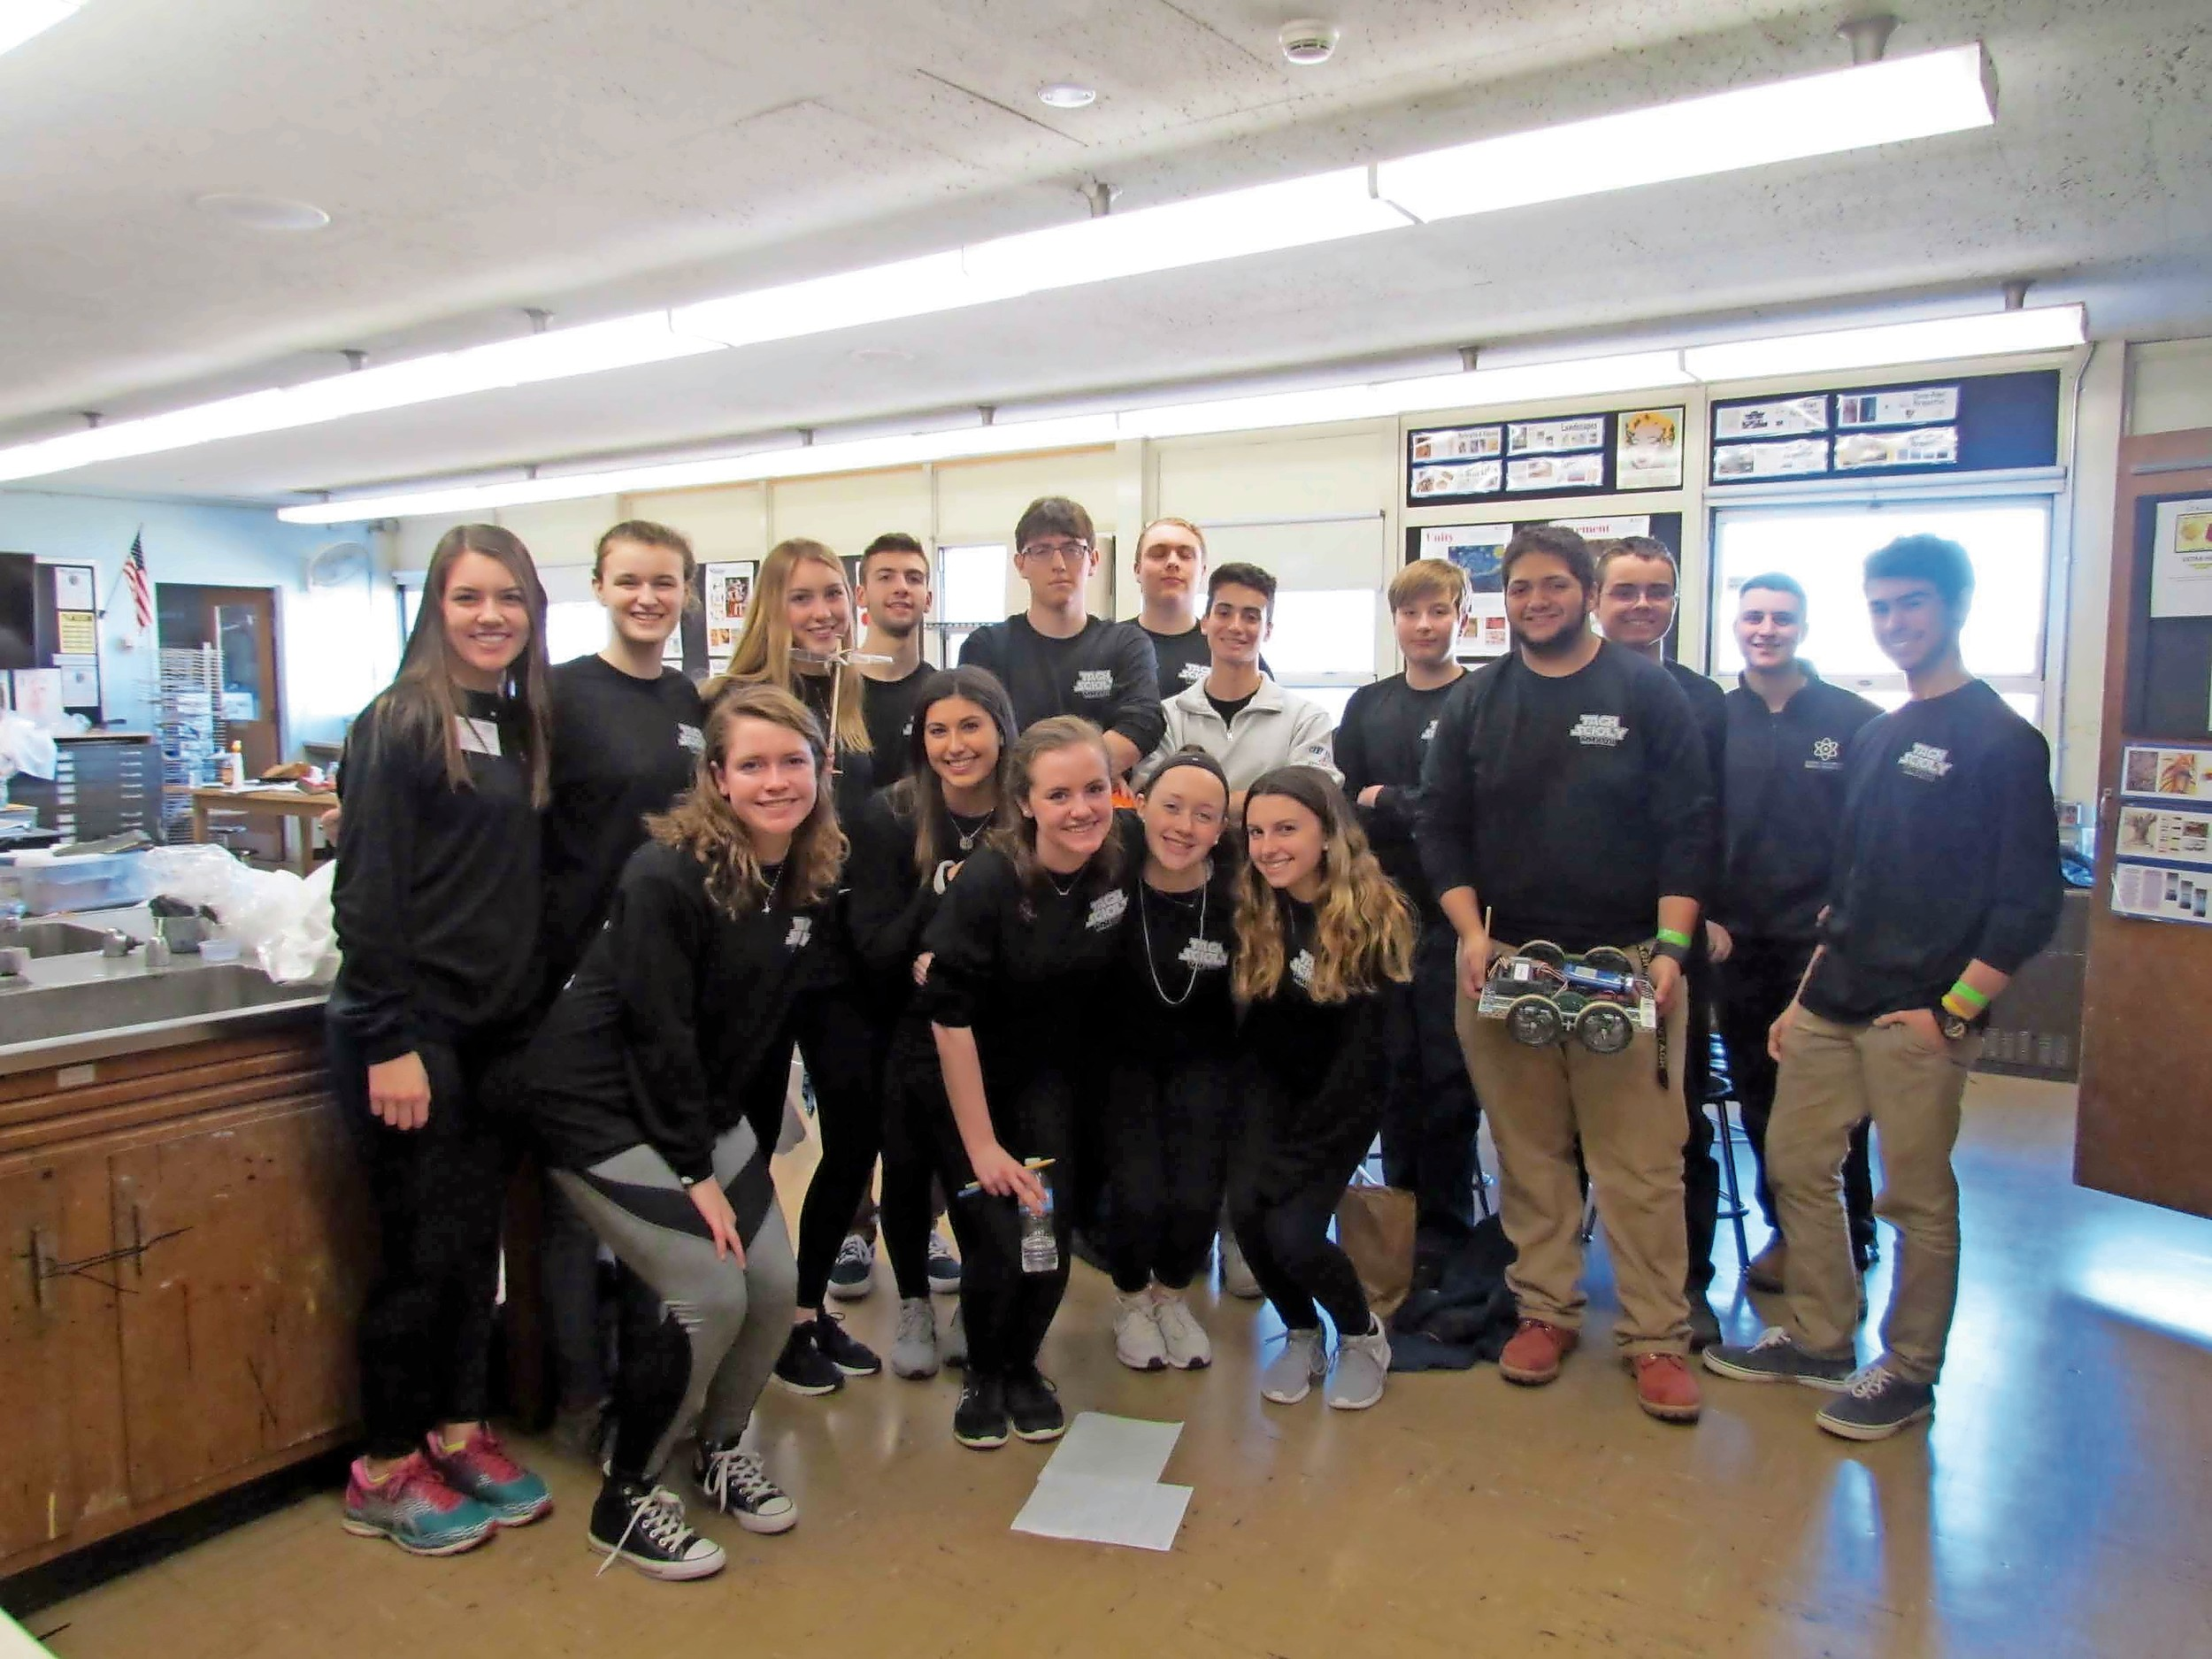 Wantagh High School students competed in the regional Science Olympiad competition on Feb. 4.